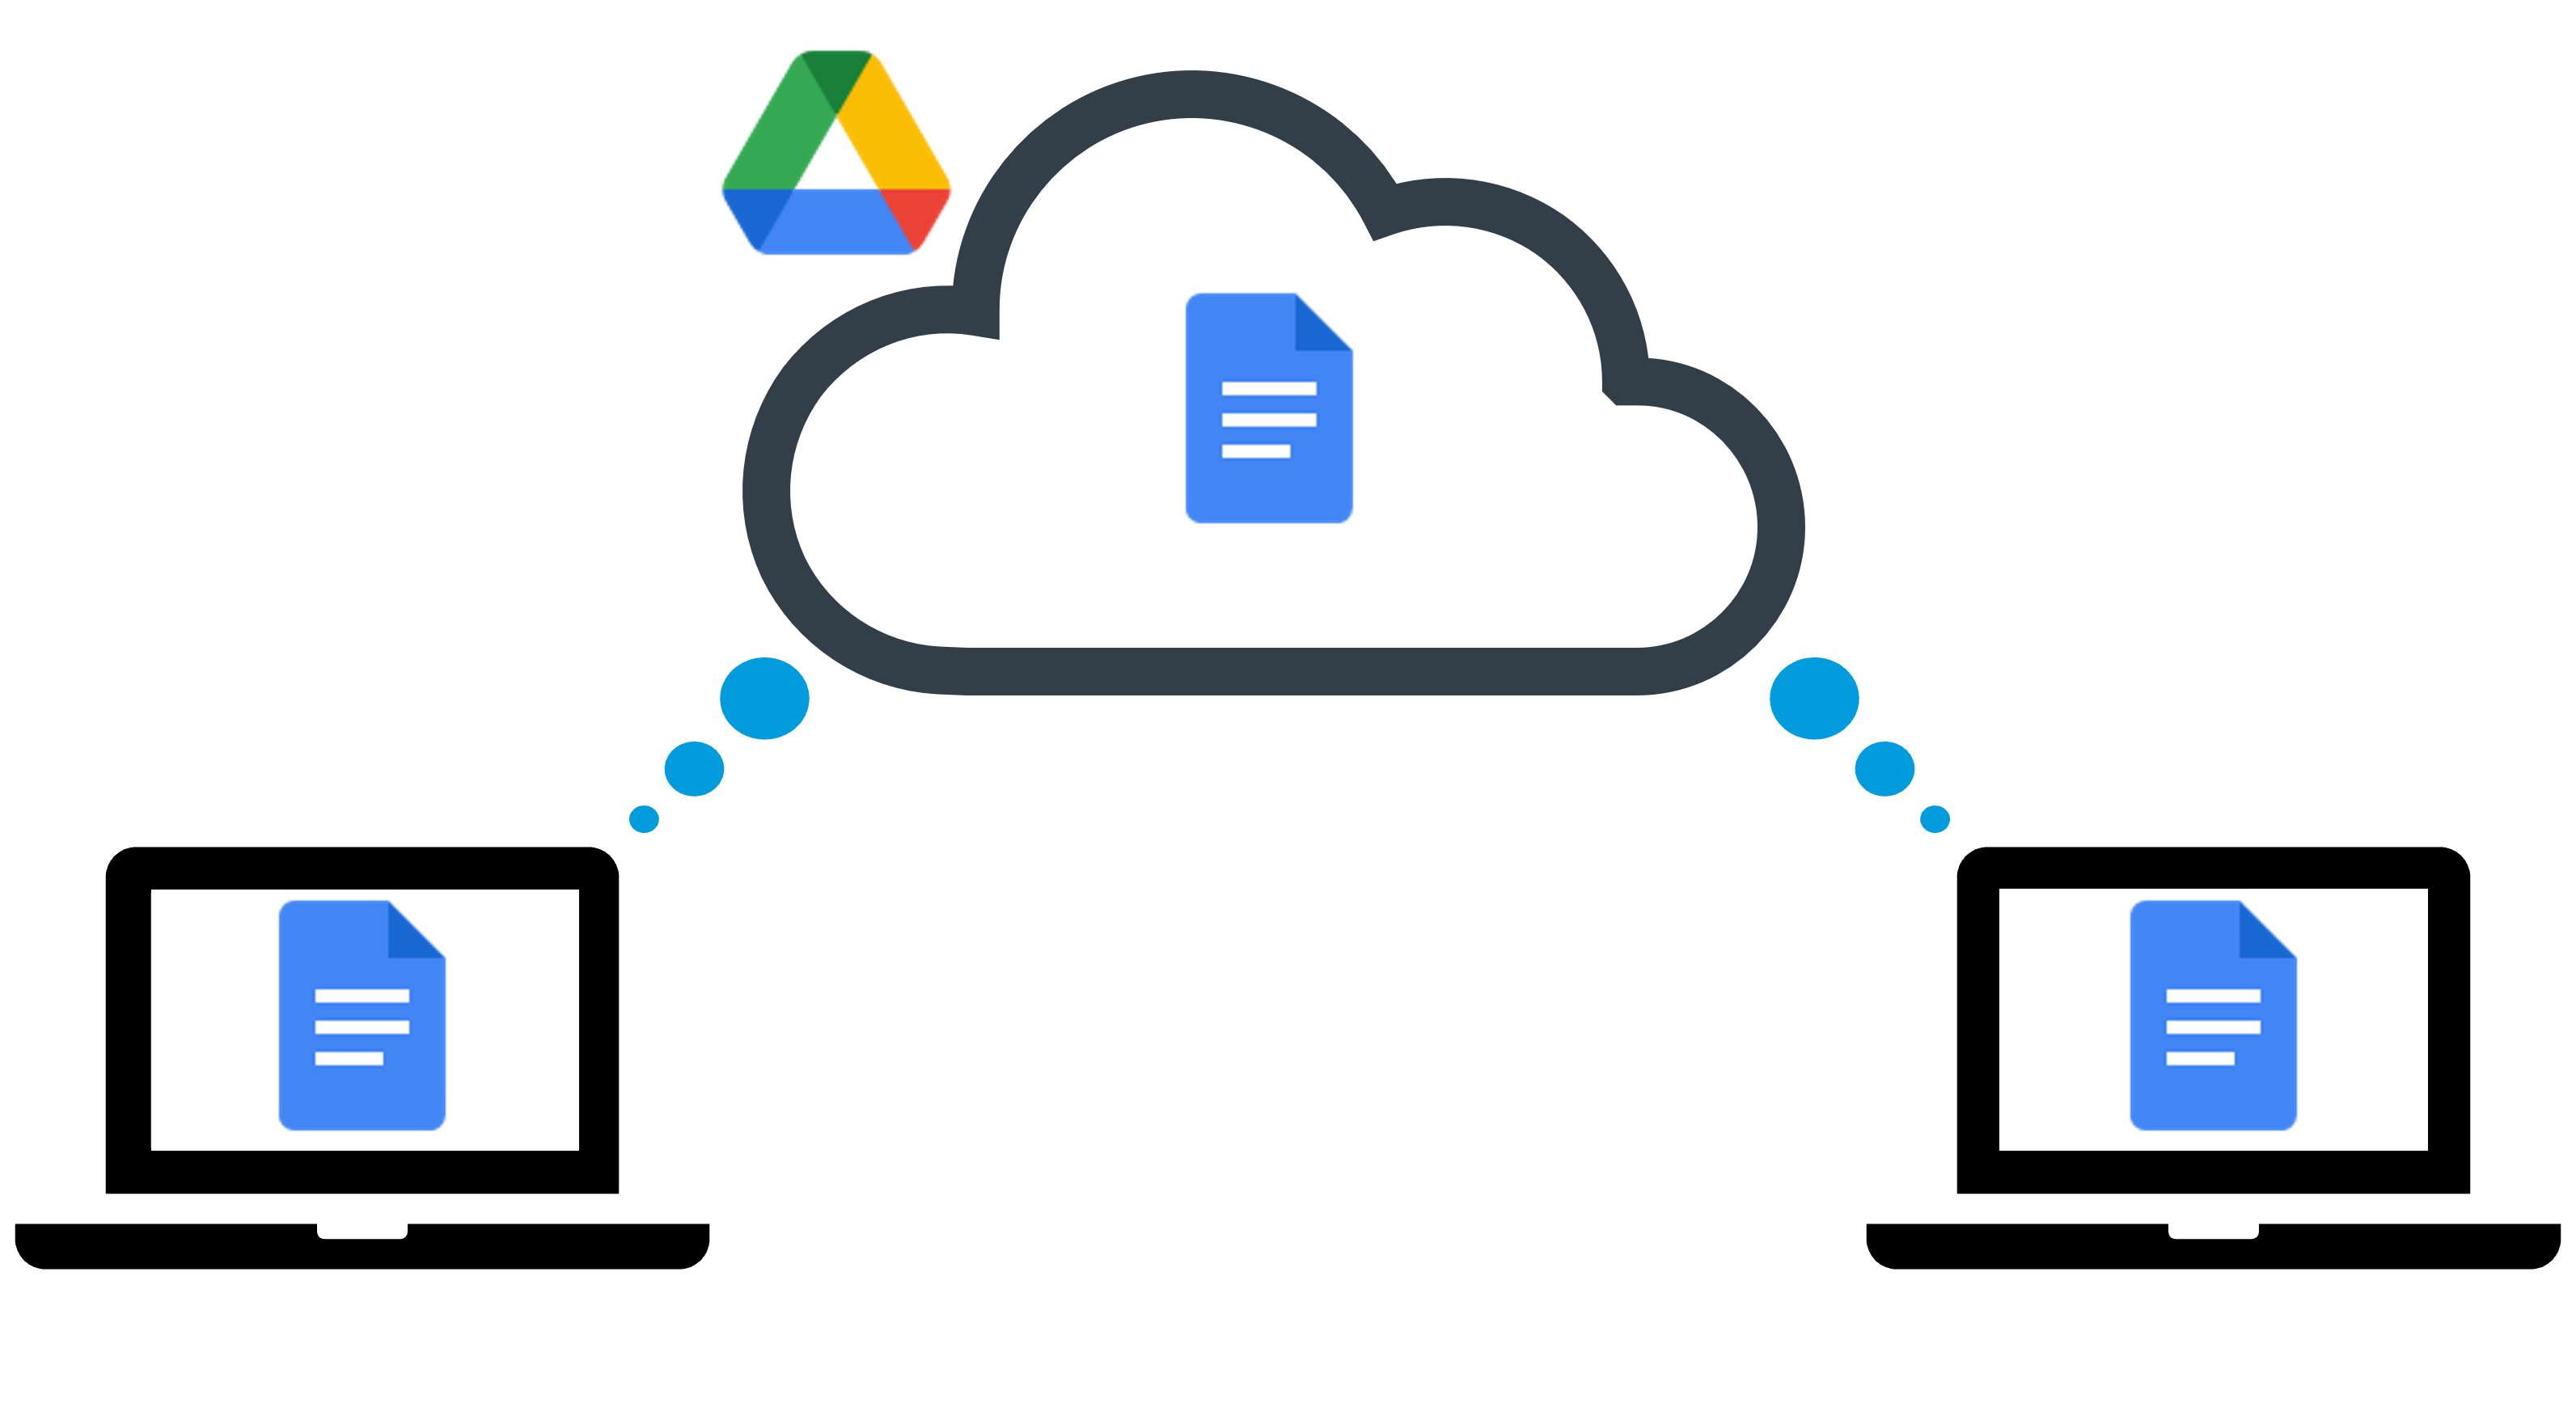 There's a shared document in the Google Drive cloud. Two computers are accessing it